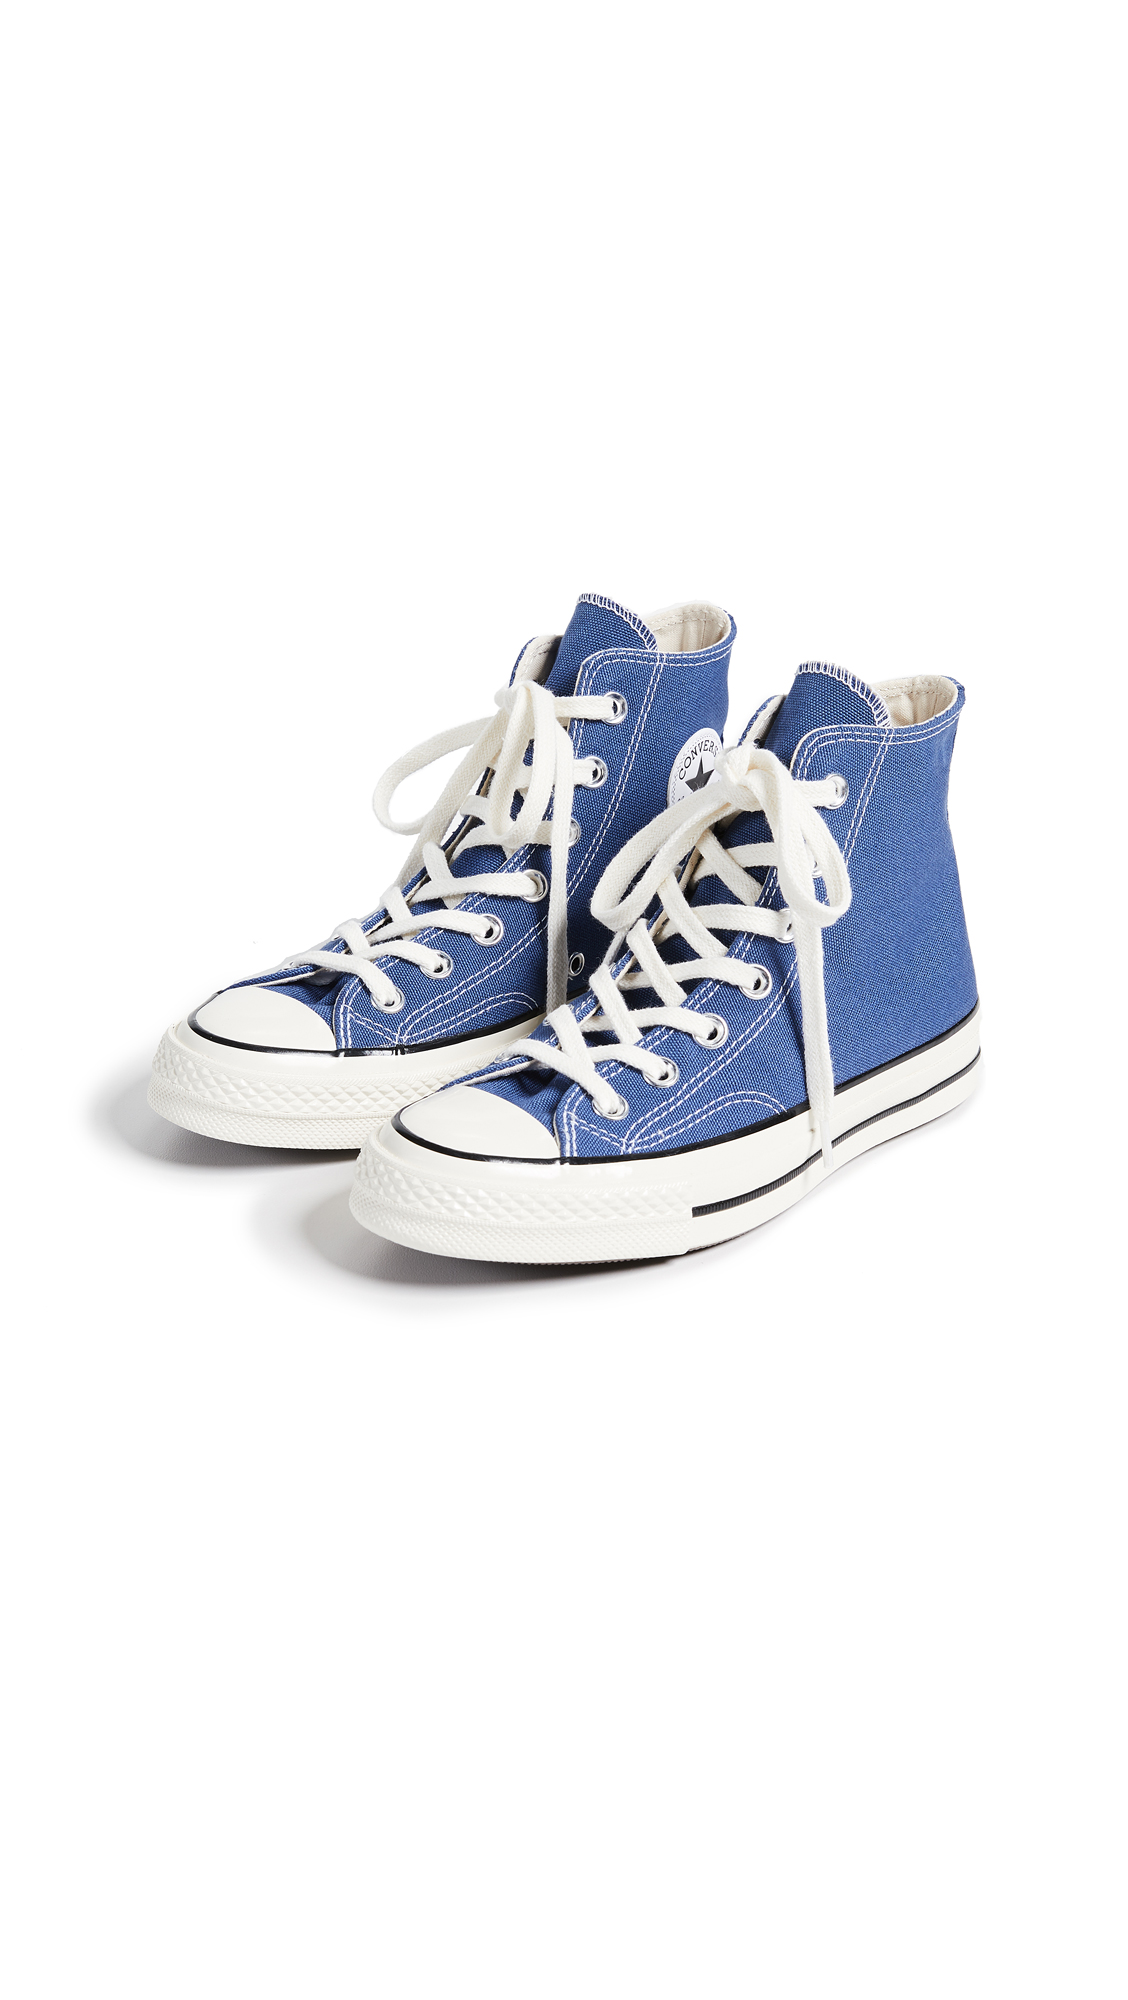 Converse All Star 70s High Top Sneakers - True Navy